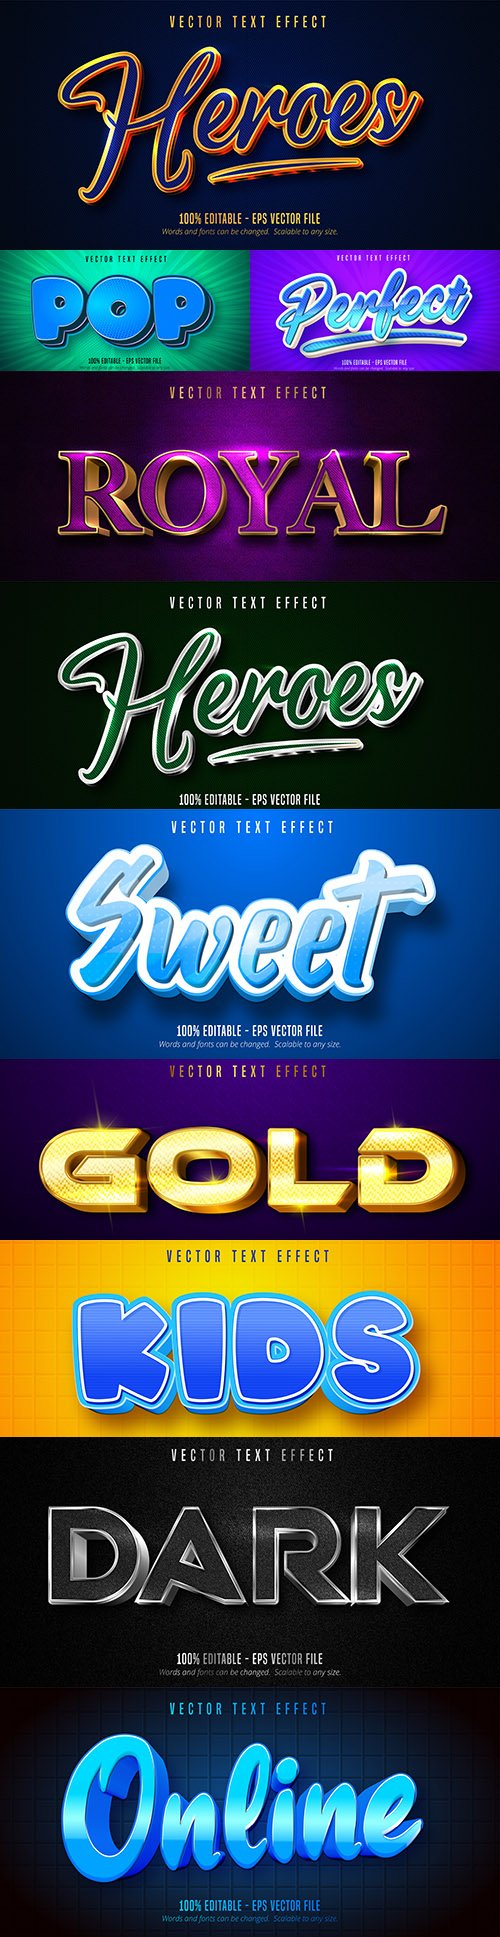 Editable font effect text collection illustration design 197